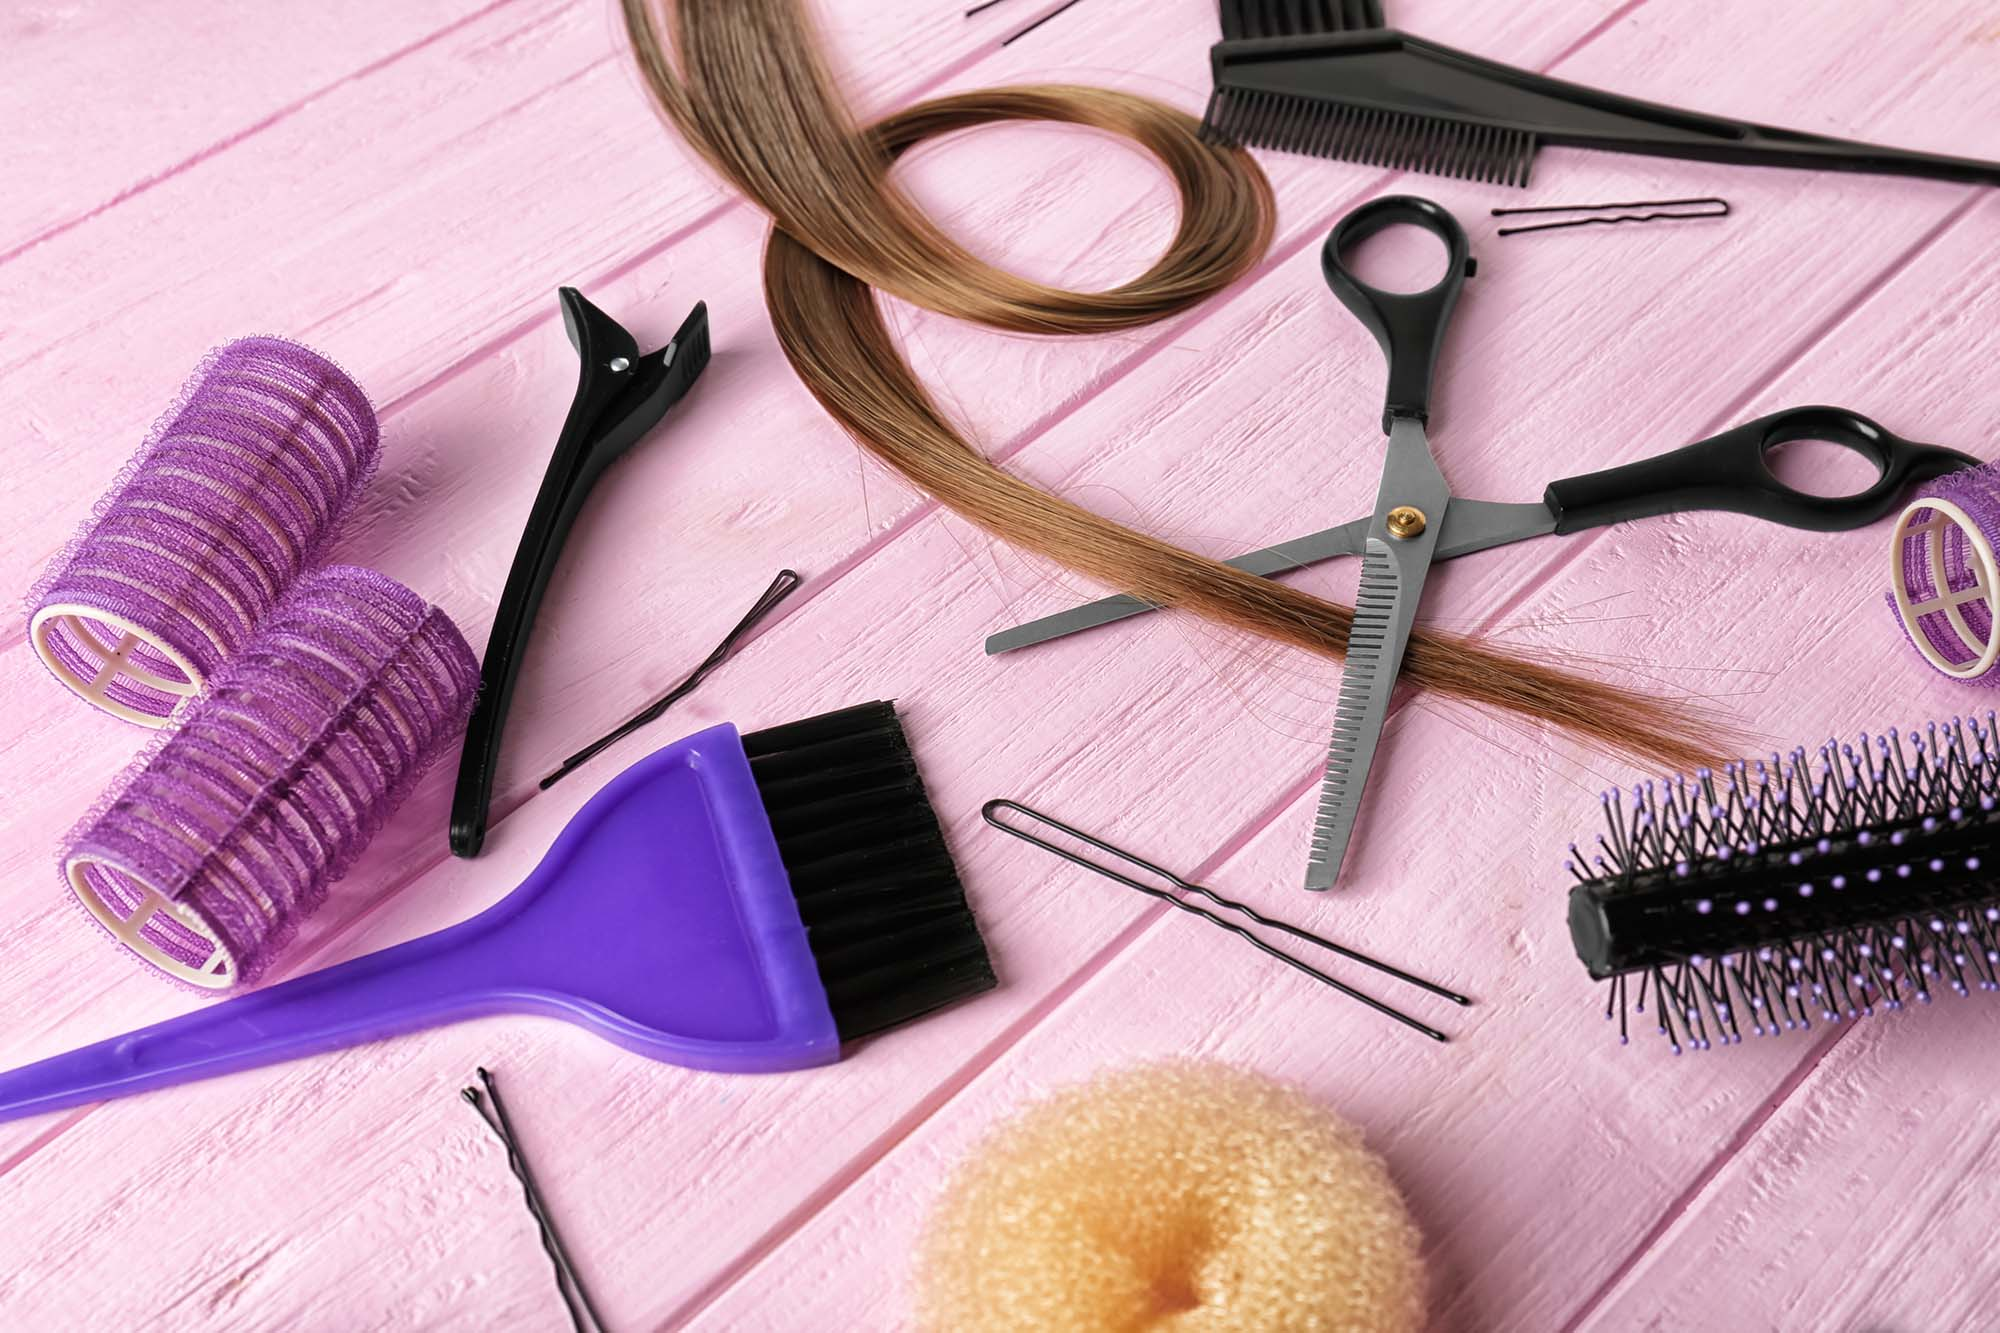 Set of hairdresser's supplies on color wooden background